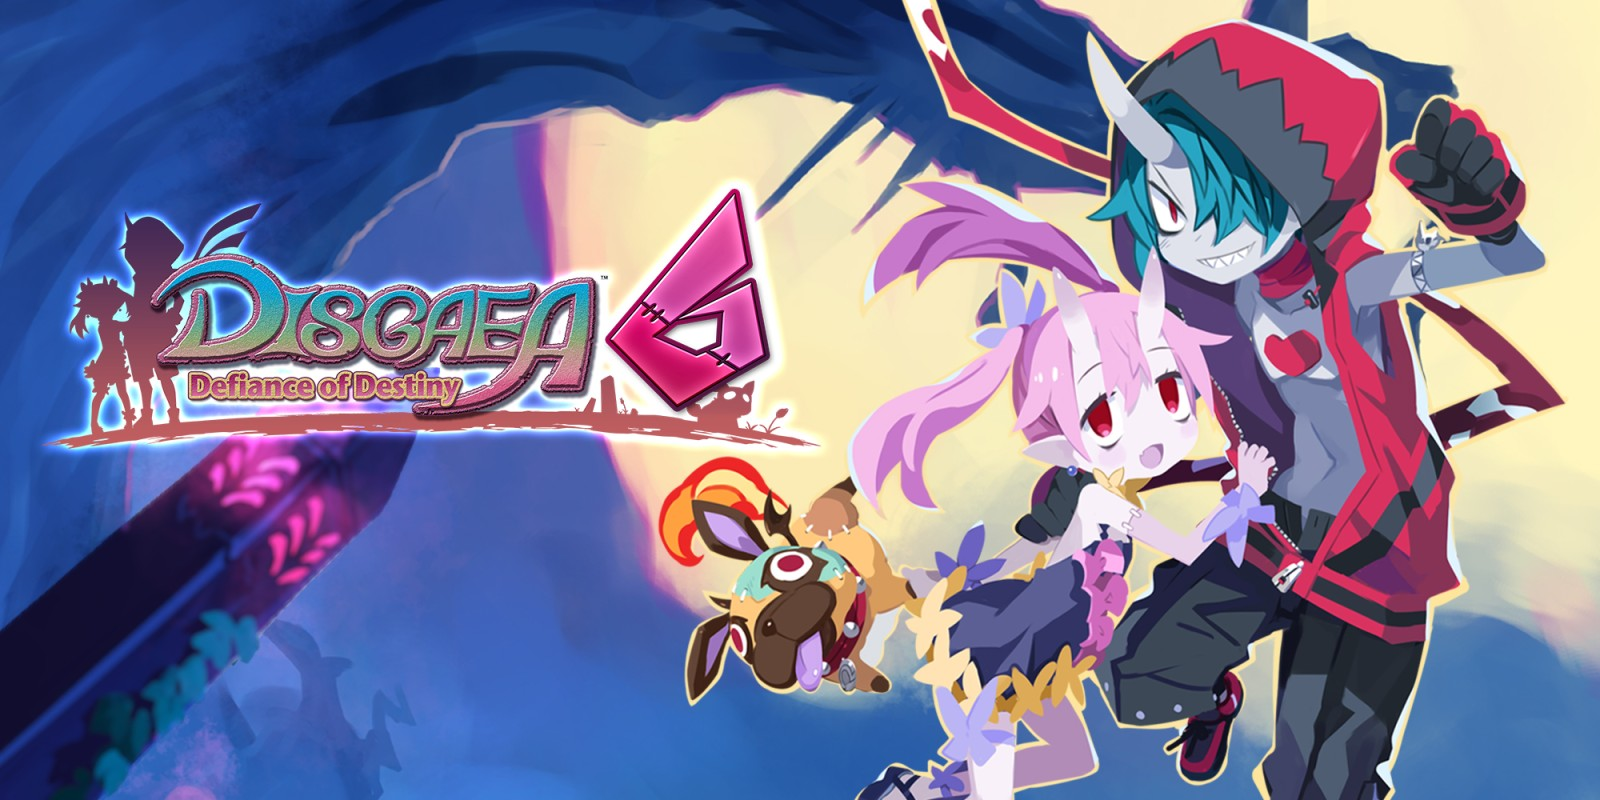 Disgaea 6 release date has been announced